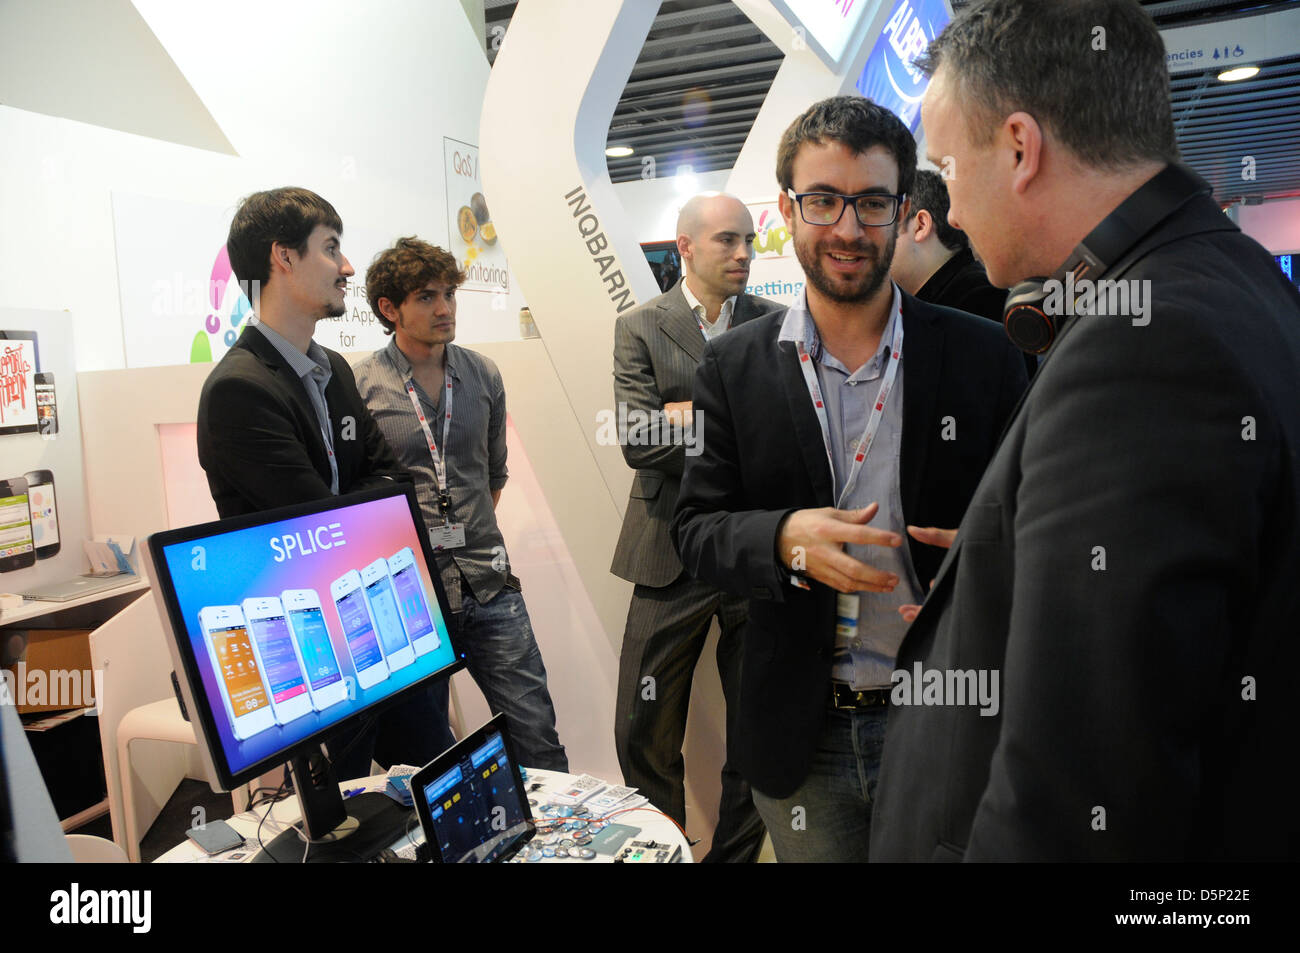 Nacho Sanchez, founder: INqBarna. create APPS. World Mobile Congress 2013 in Barcelona. 270213. - Stock Image